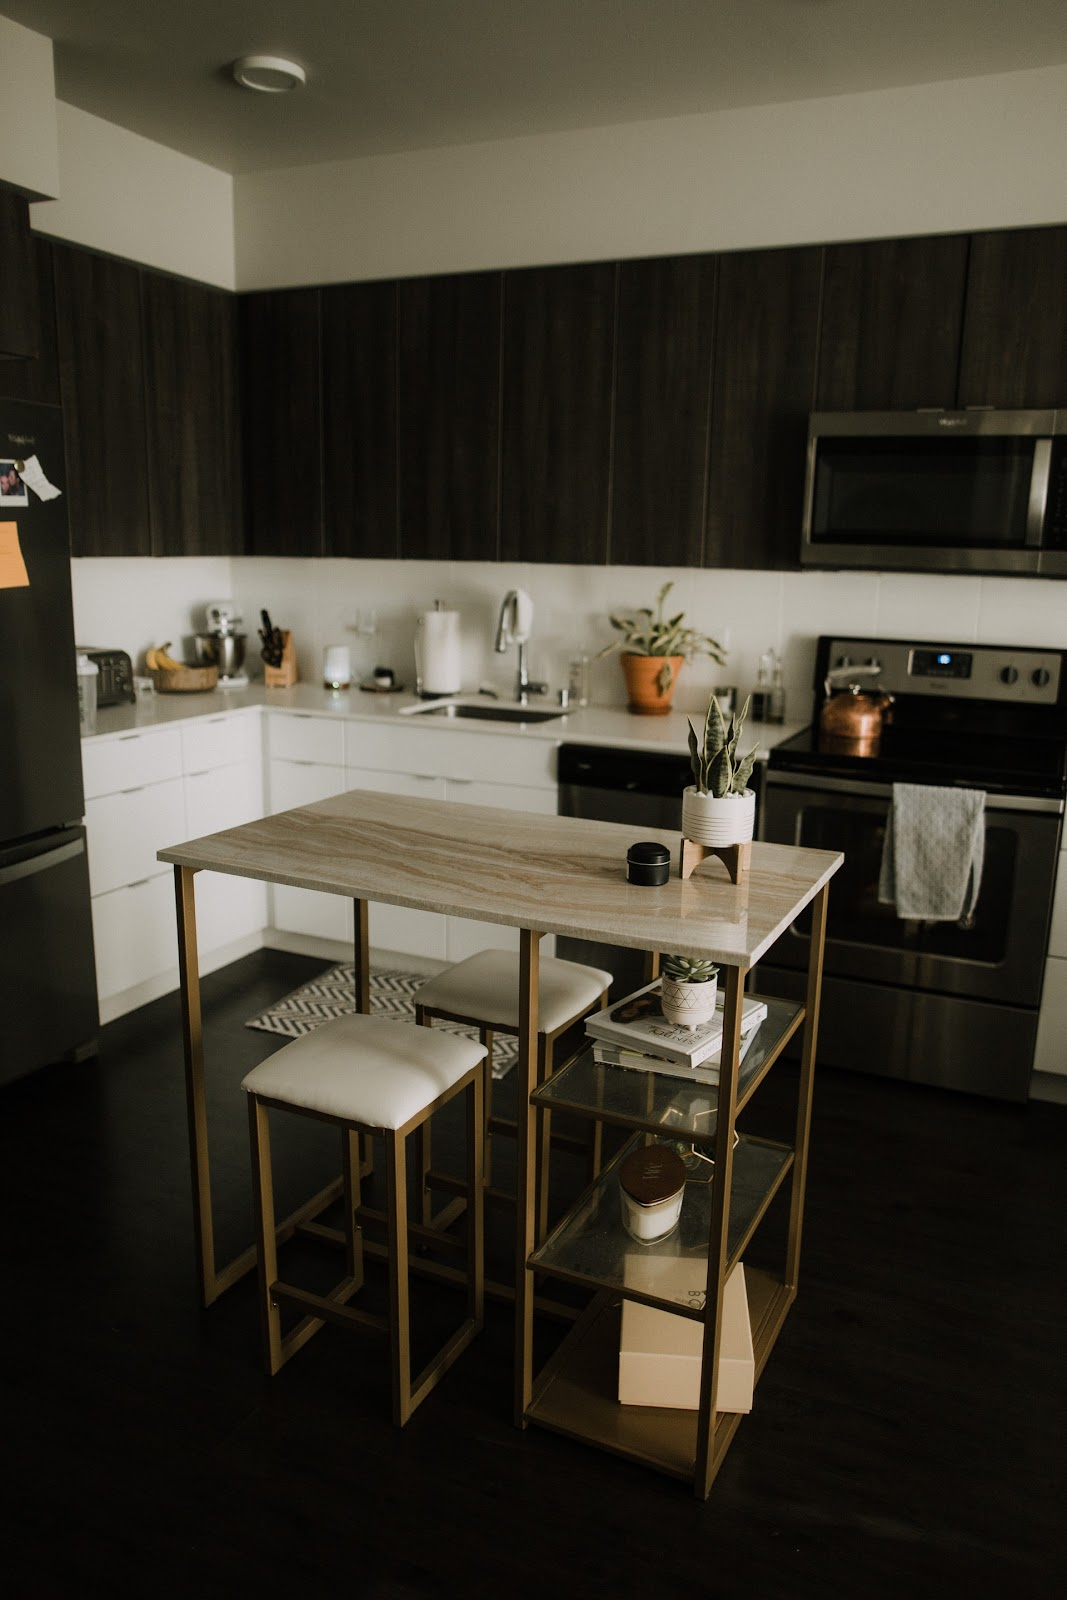 Compact kitchen with white and black wooden cabinets, and other essential utensils in the background